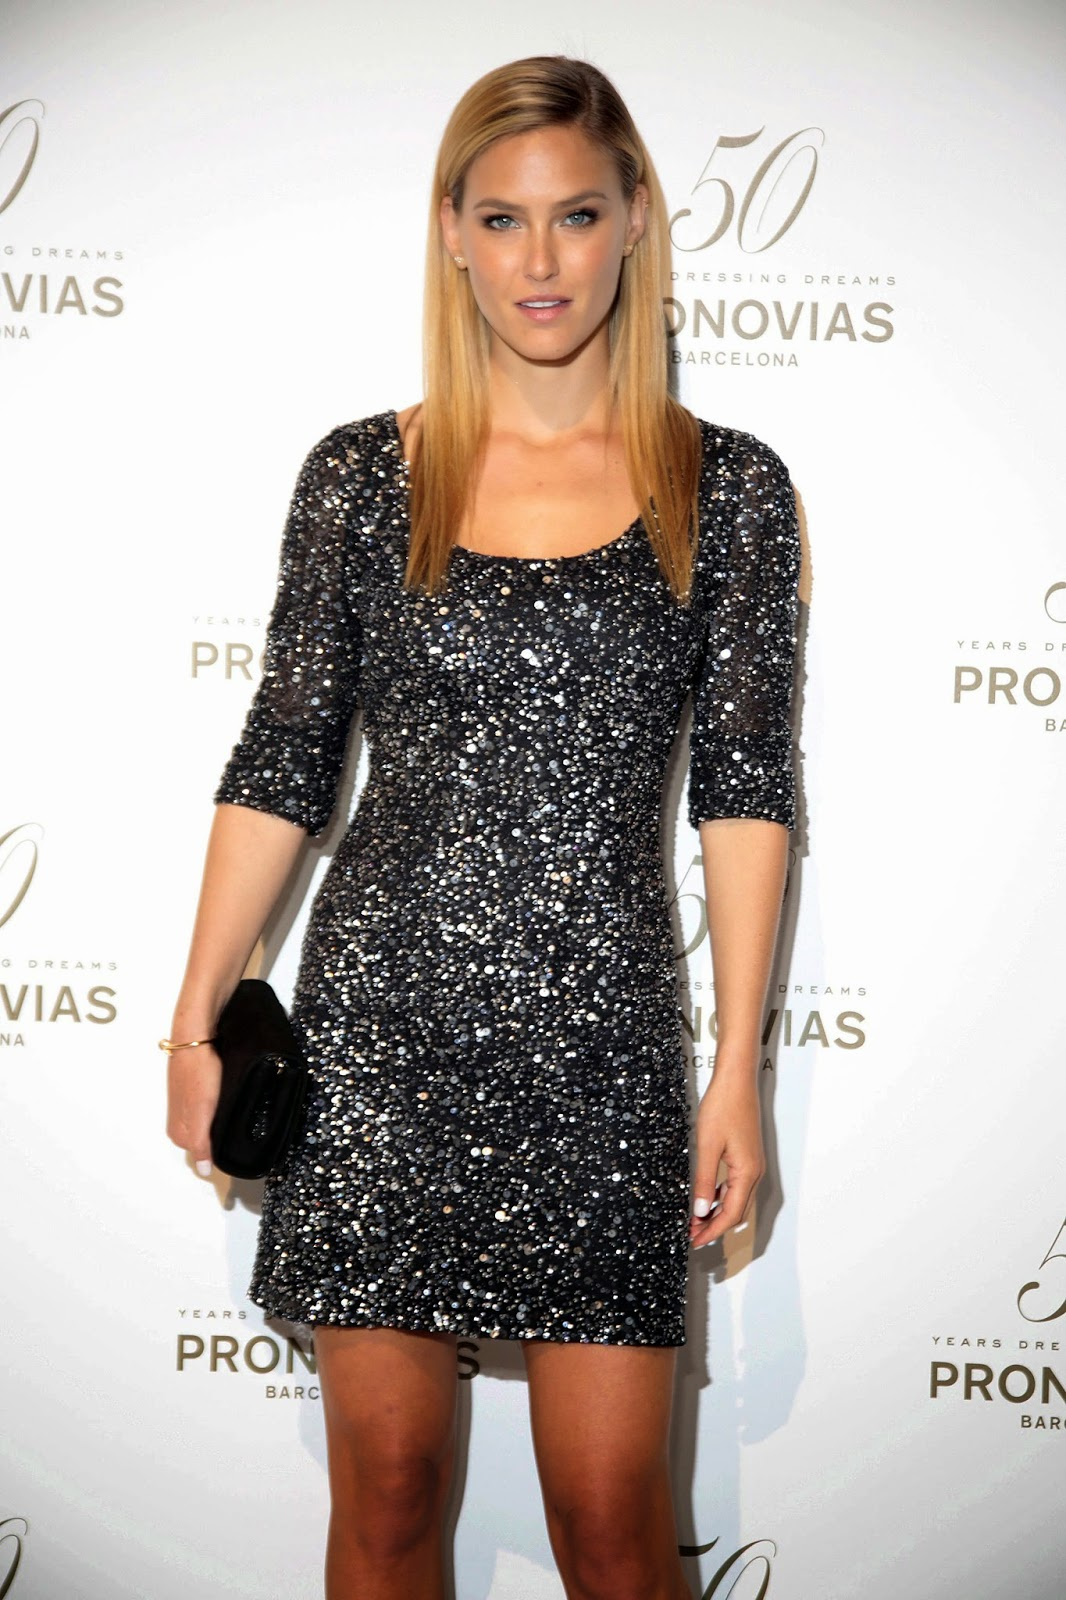 Gorgeous supermodel Bar Rafaeli at Pronovia's 50th anniversary bridal fashion show in Barcelona